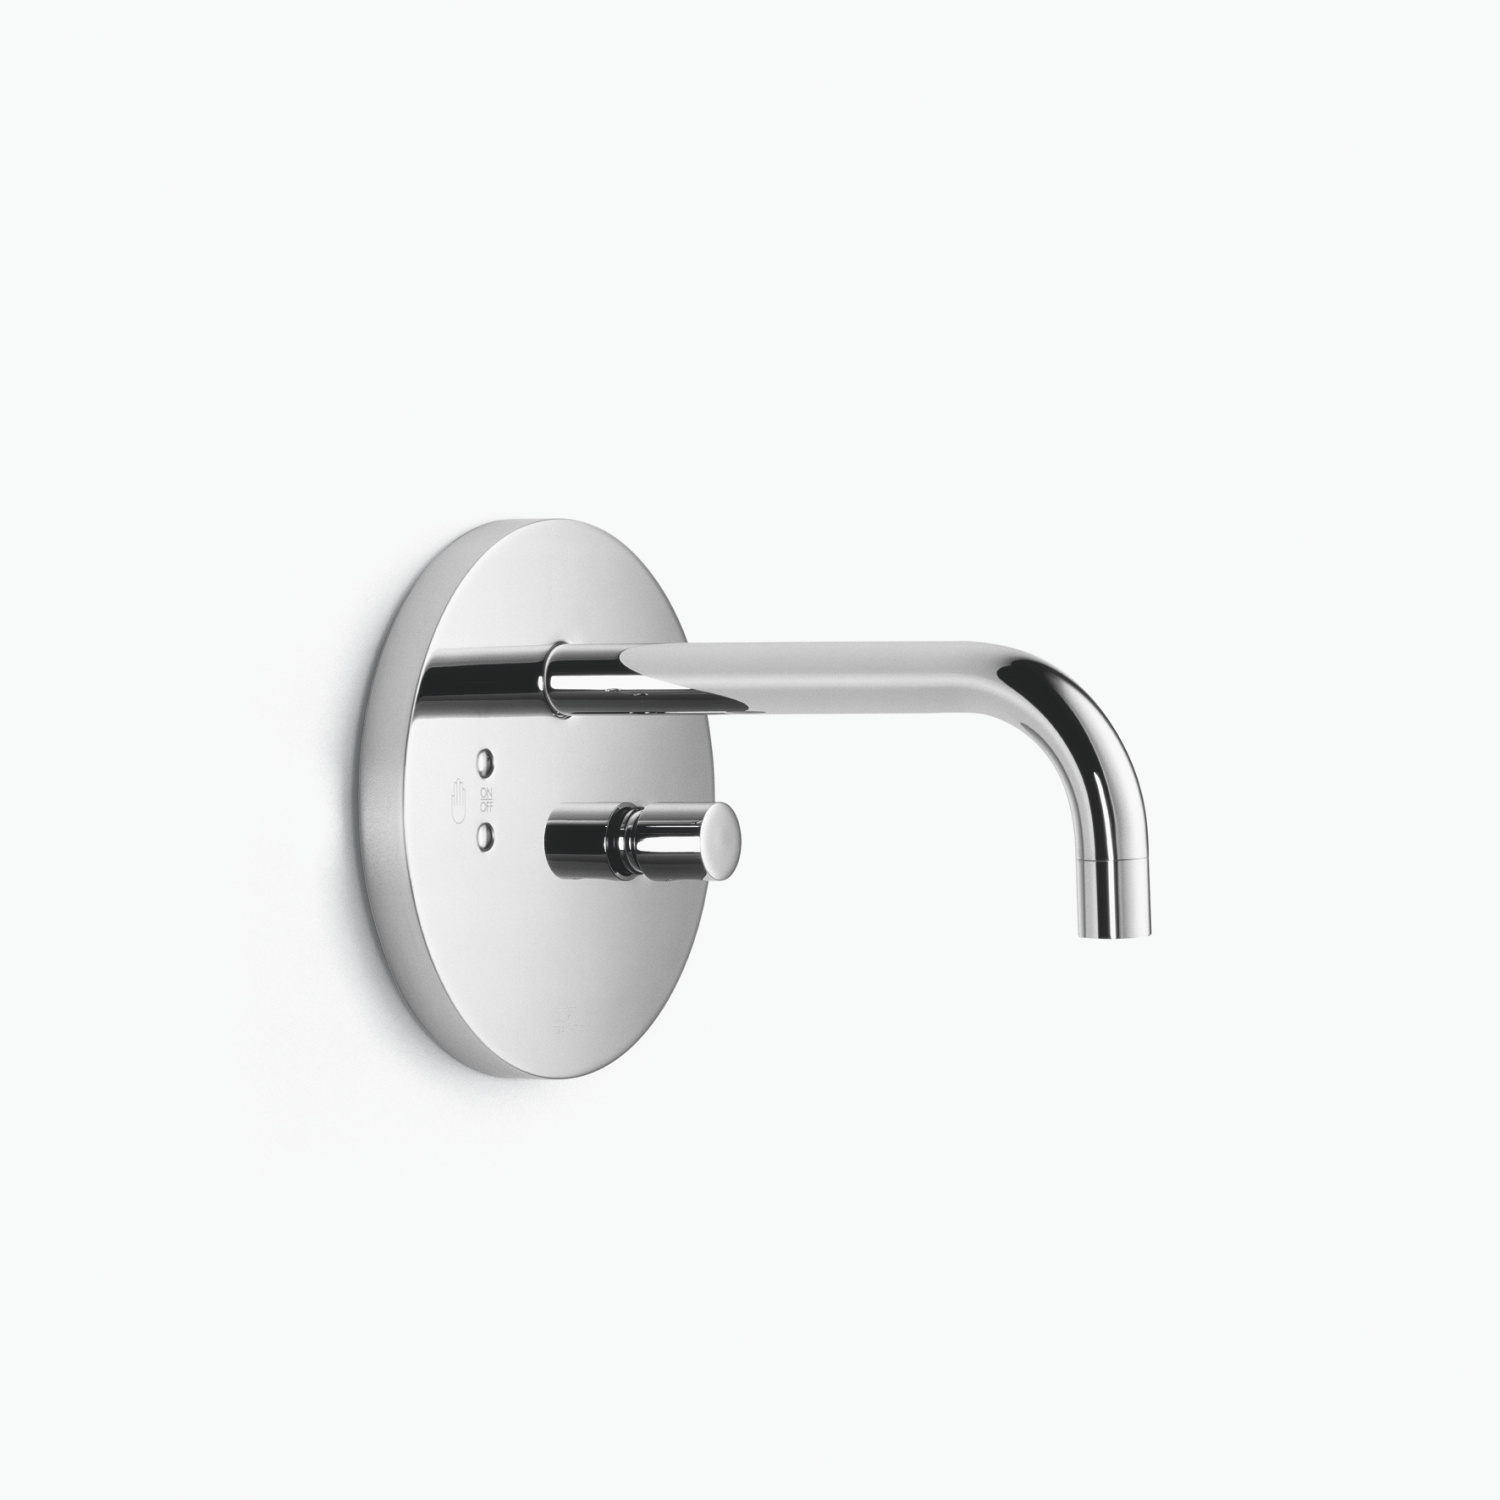 Infrared washstand wall regulator with temperature control knob without drain - polished chrome